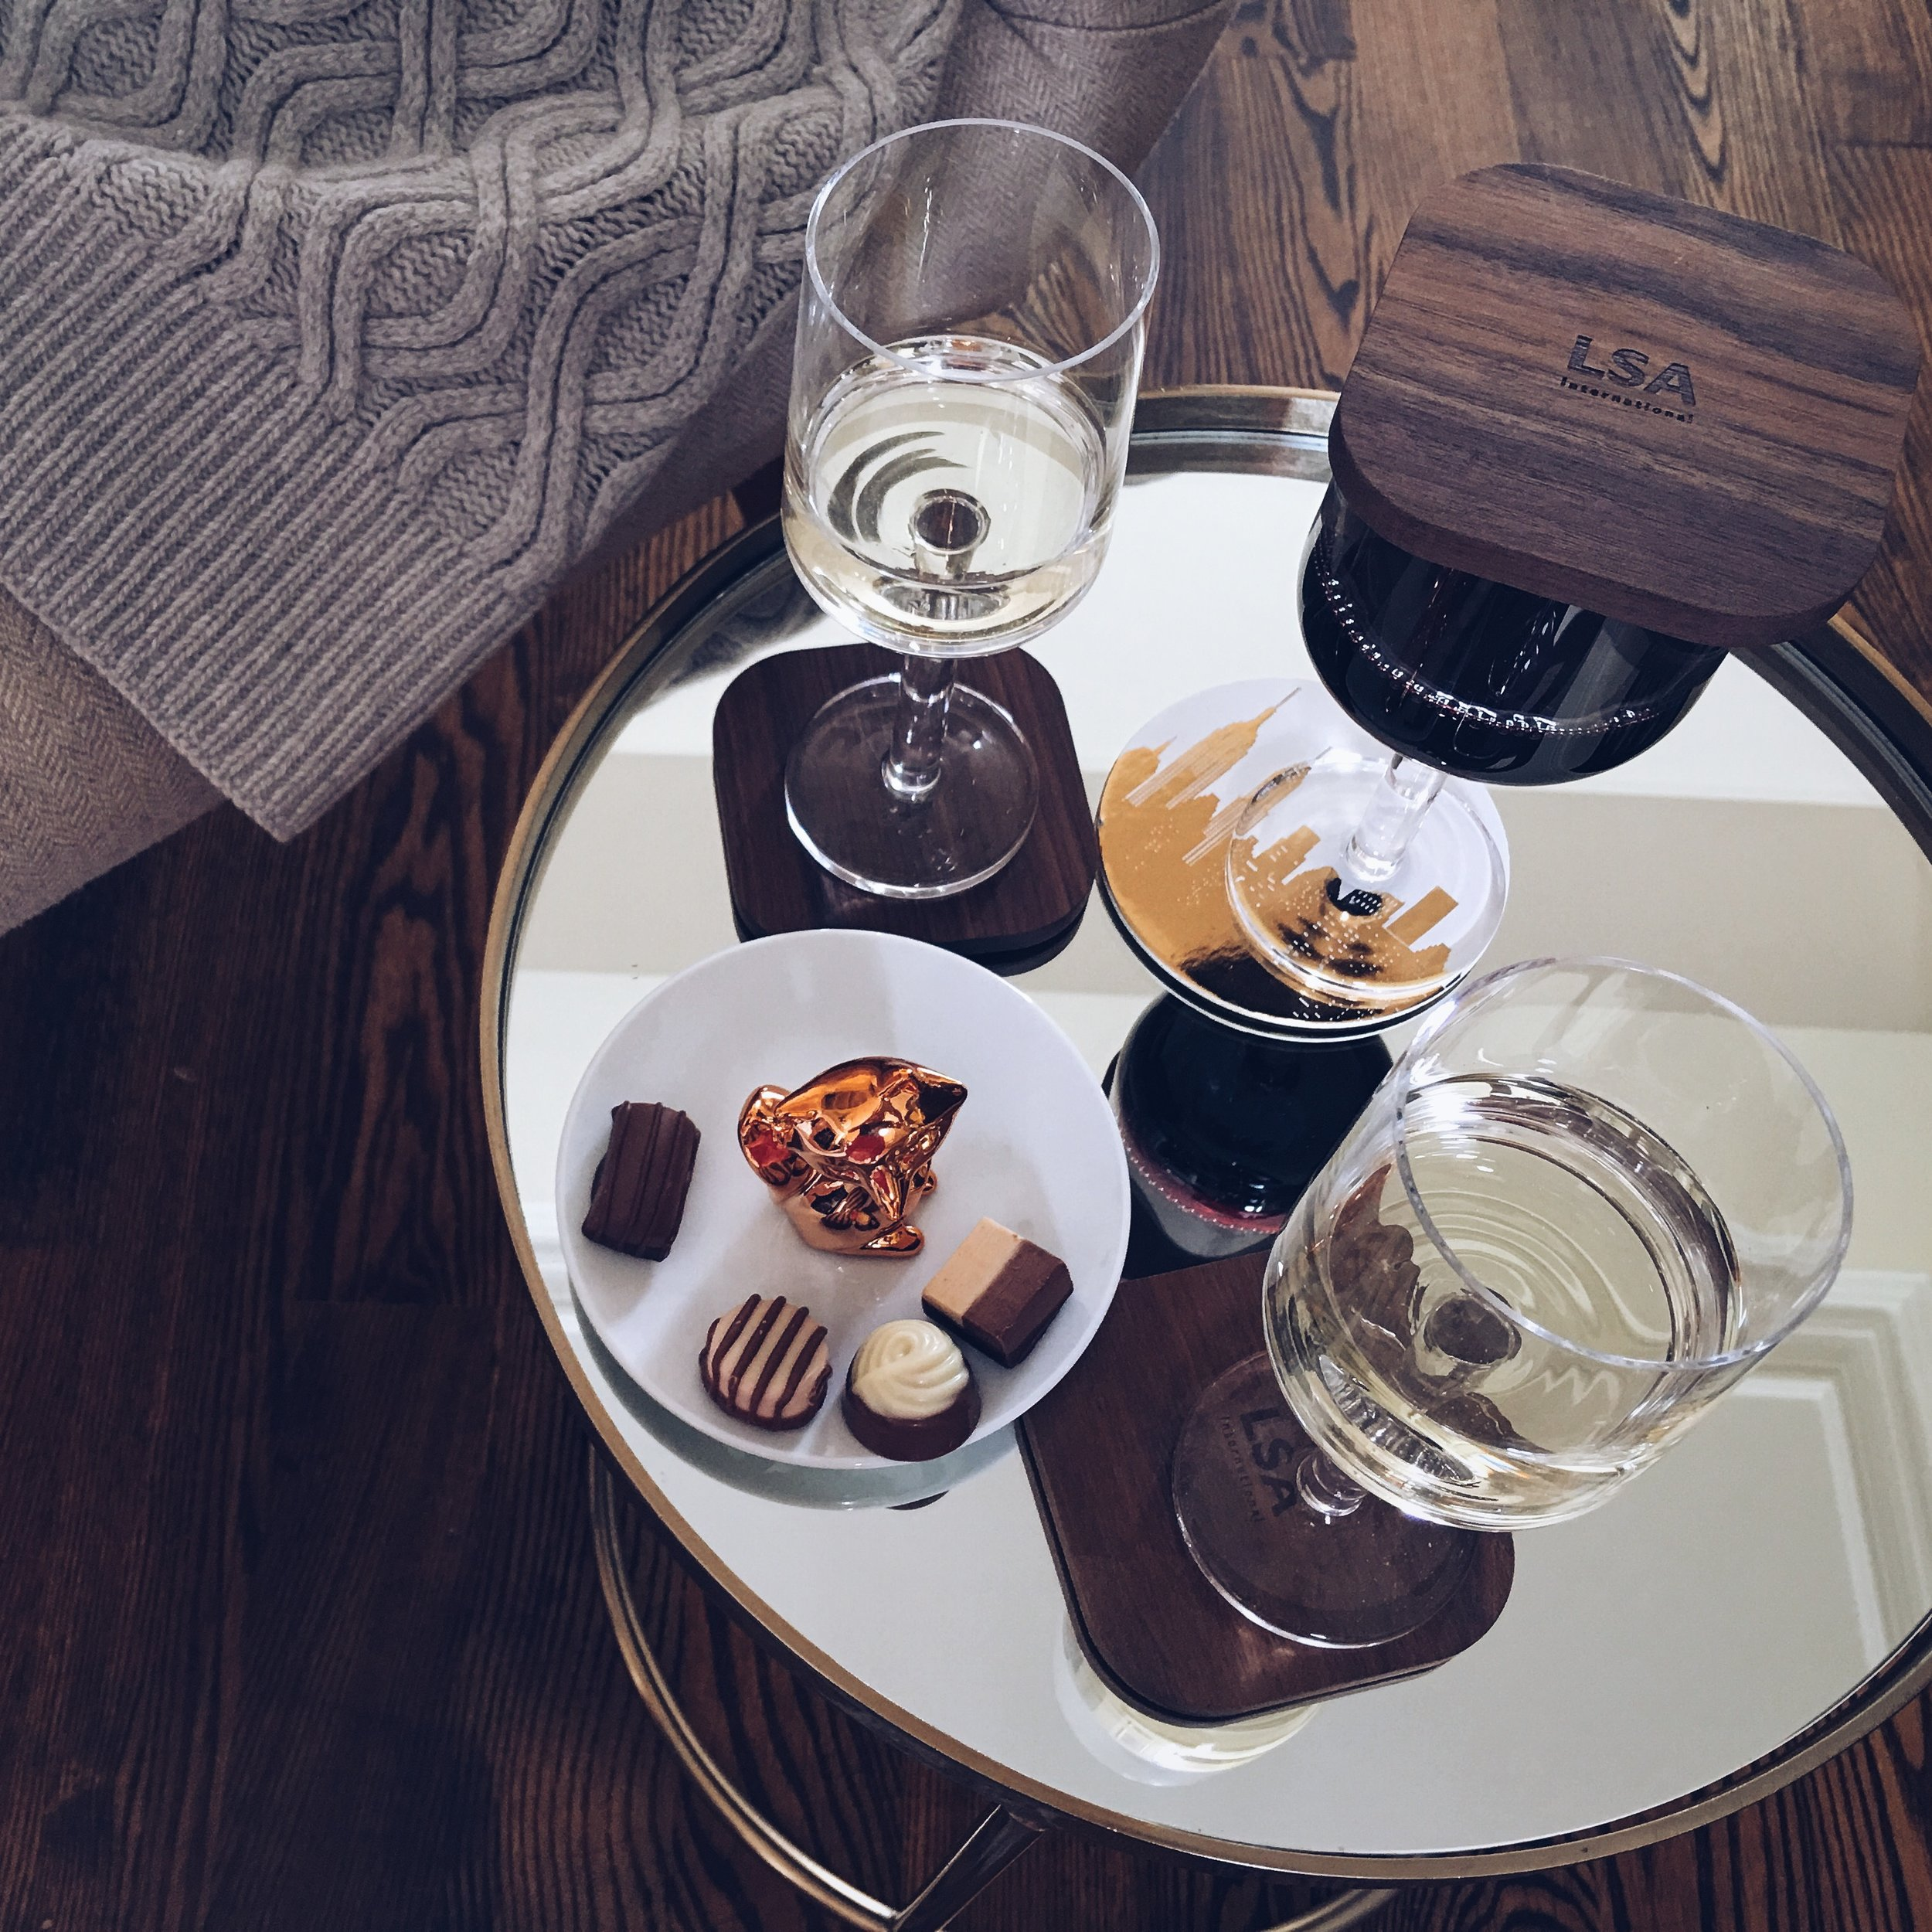 These are the CITY BAR white & red wine glasses by LSA International, which come with a Walnut coaster.